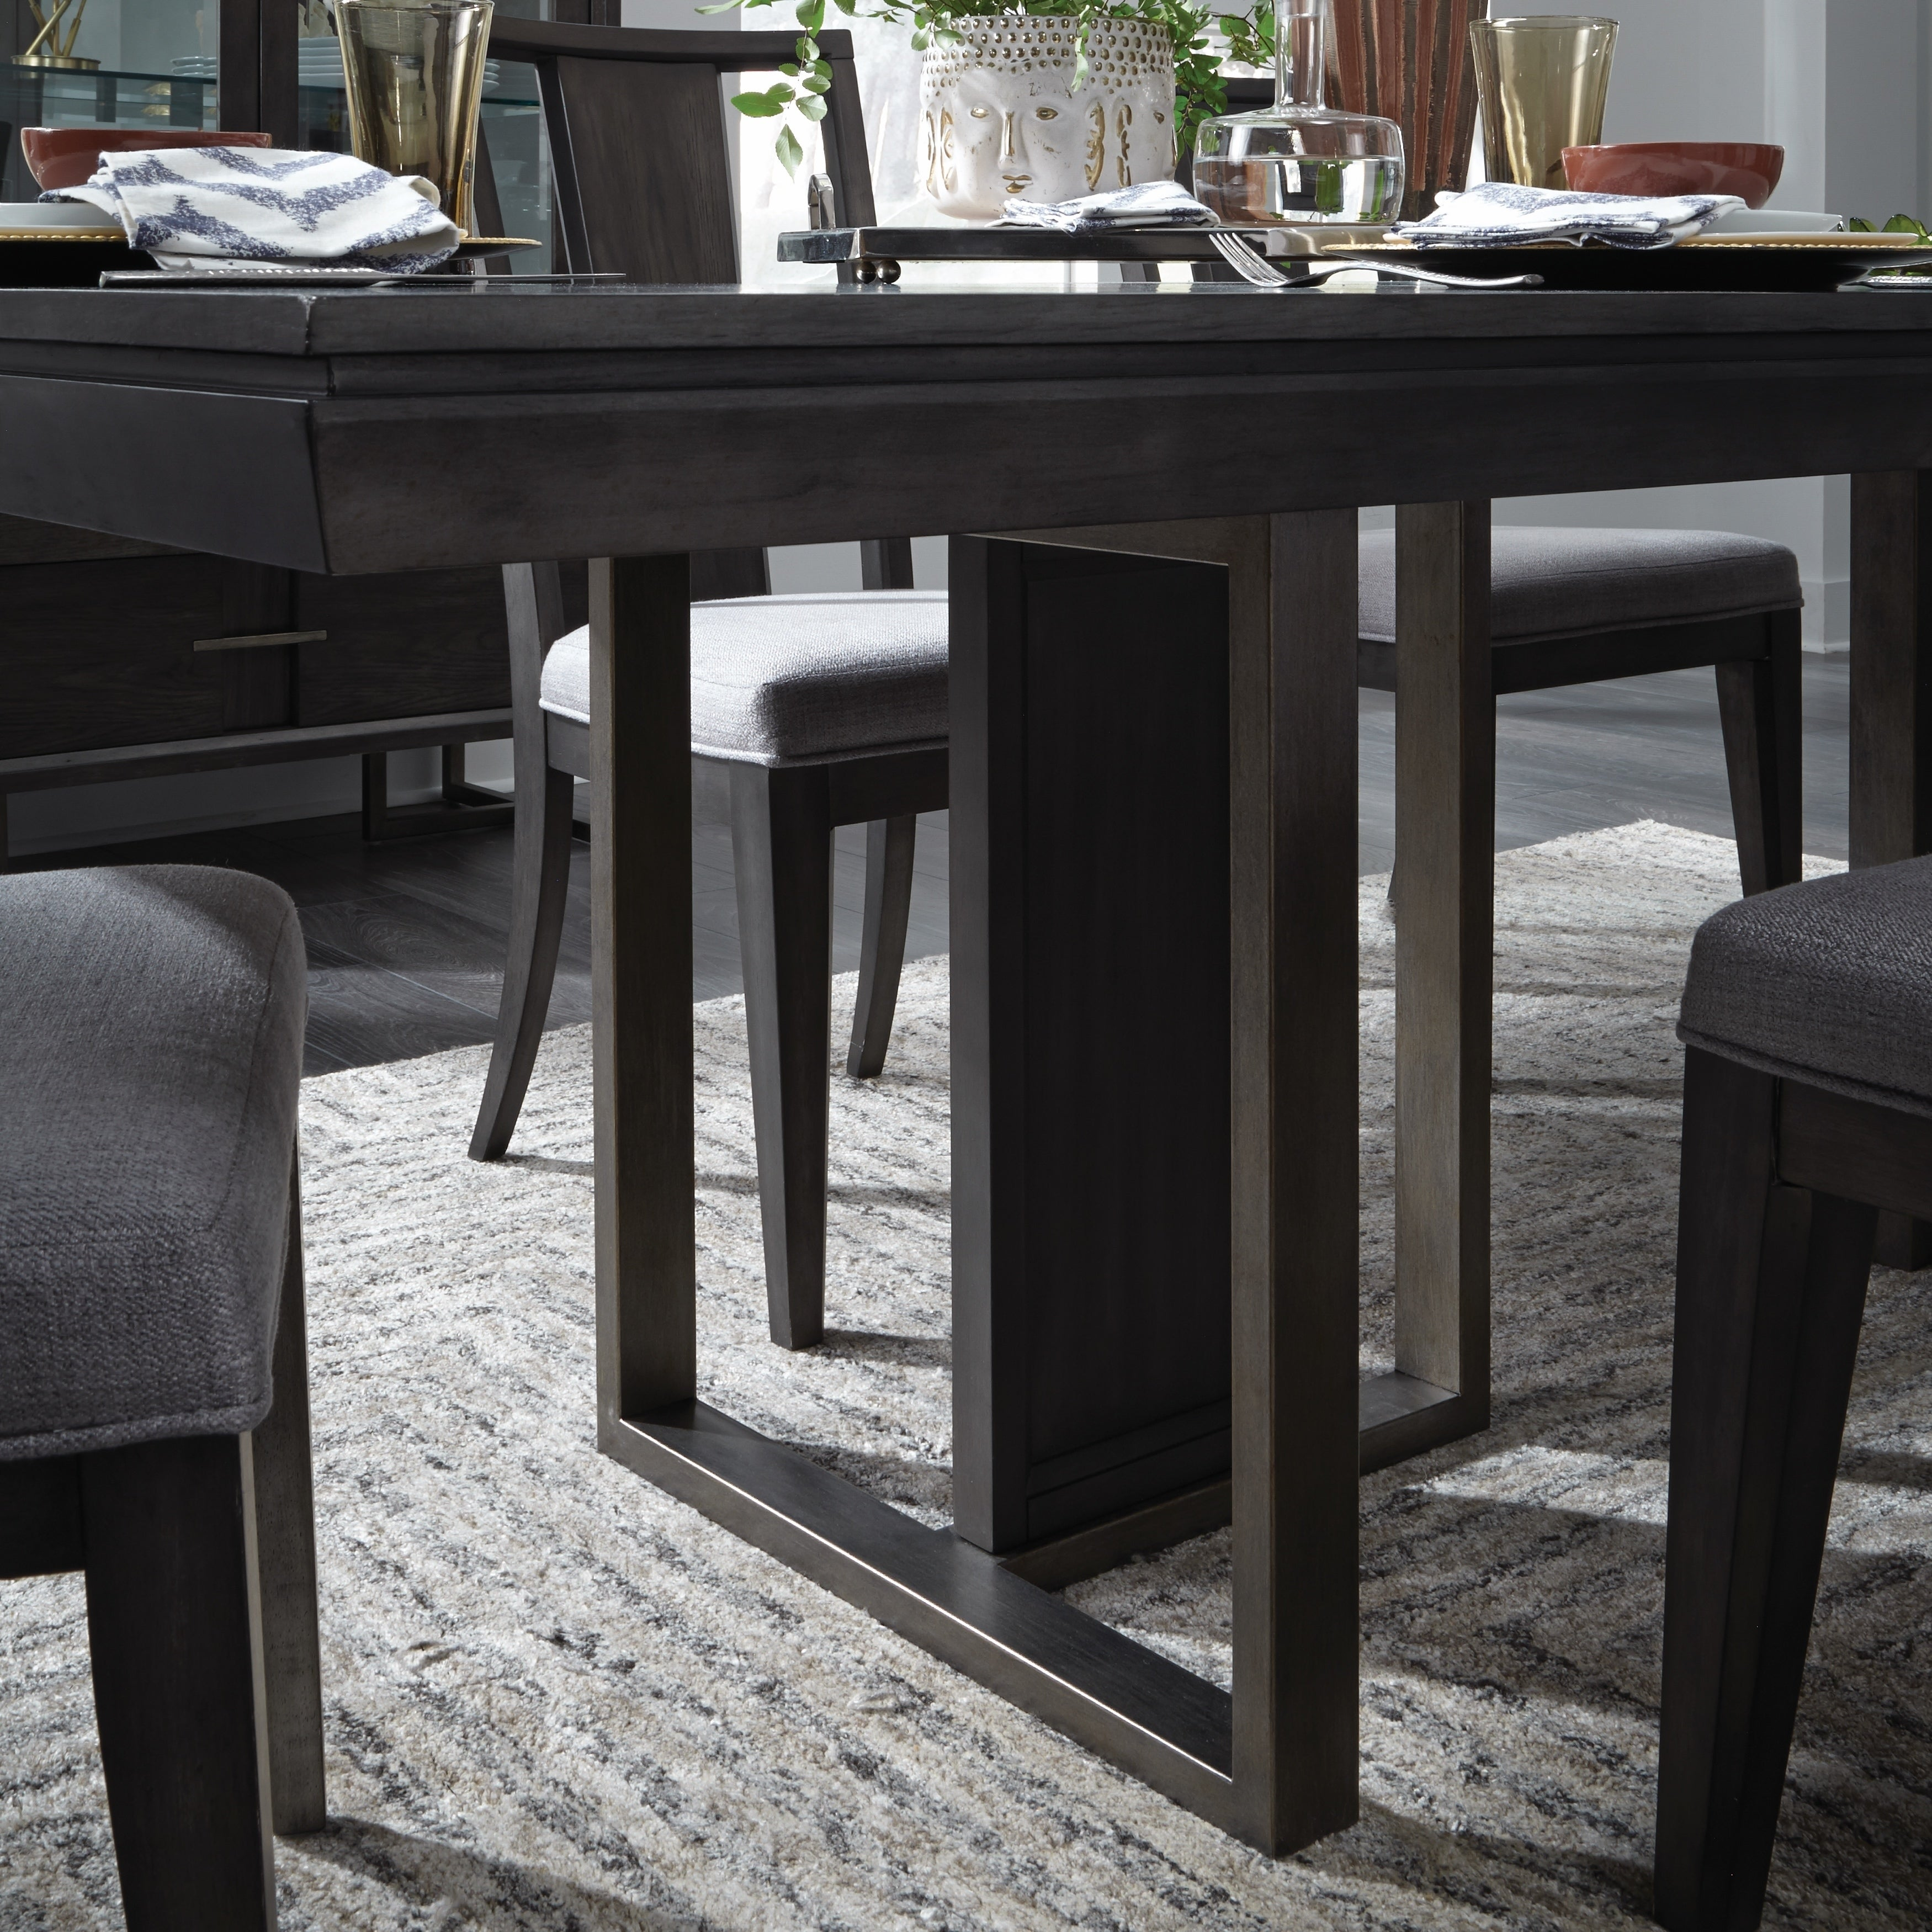 Proximity Heights Contemporary Double Pedestal Dining Table Smoke Anthracite 40 L X 78 W 30 H On Free Shipping Today